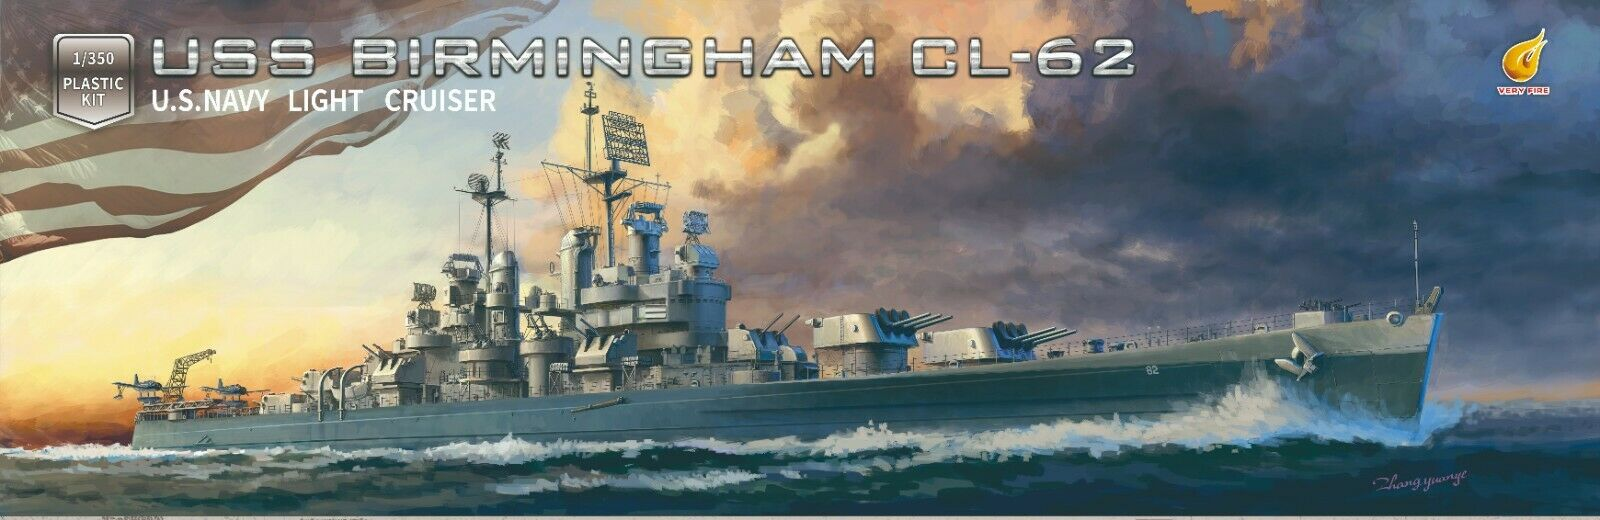 Very Fire 1/350 USS Birmingham CL-62